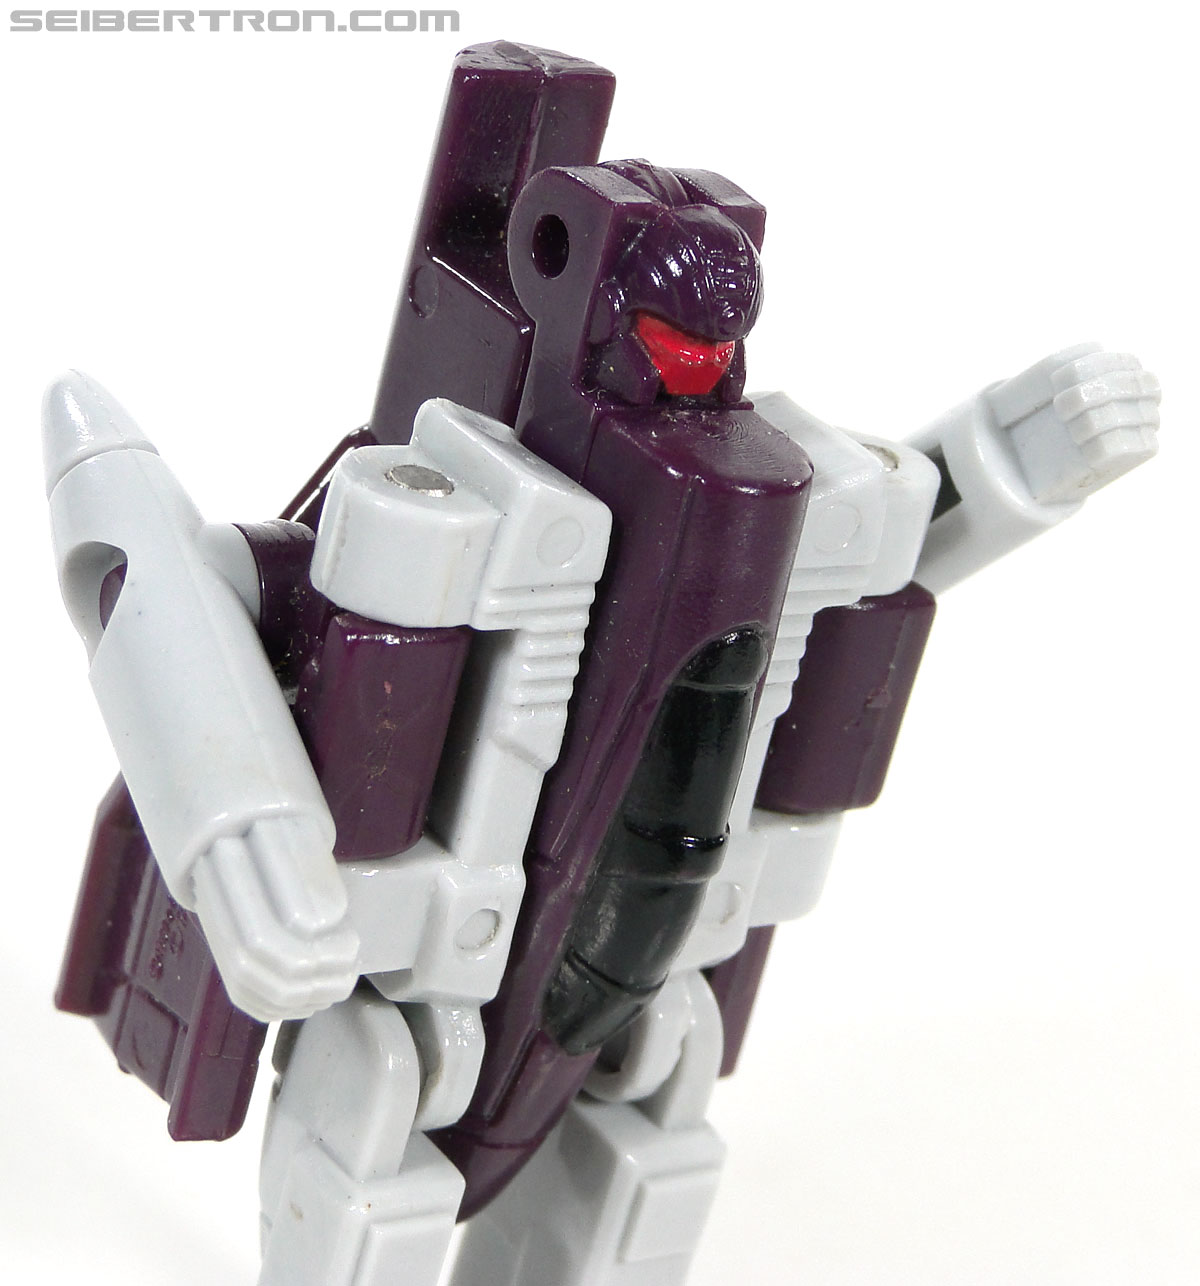 Transformers G1 1989 Flattop (Skywave) (Image #109 of 118)